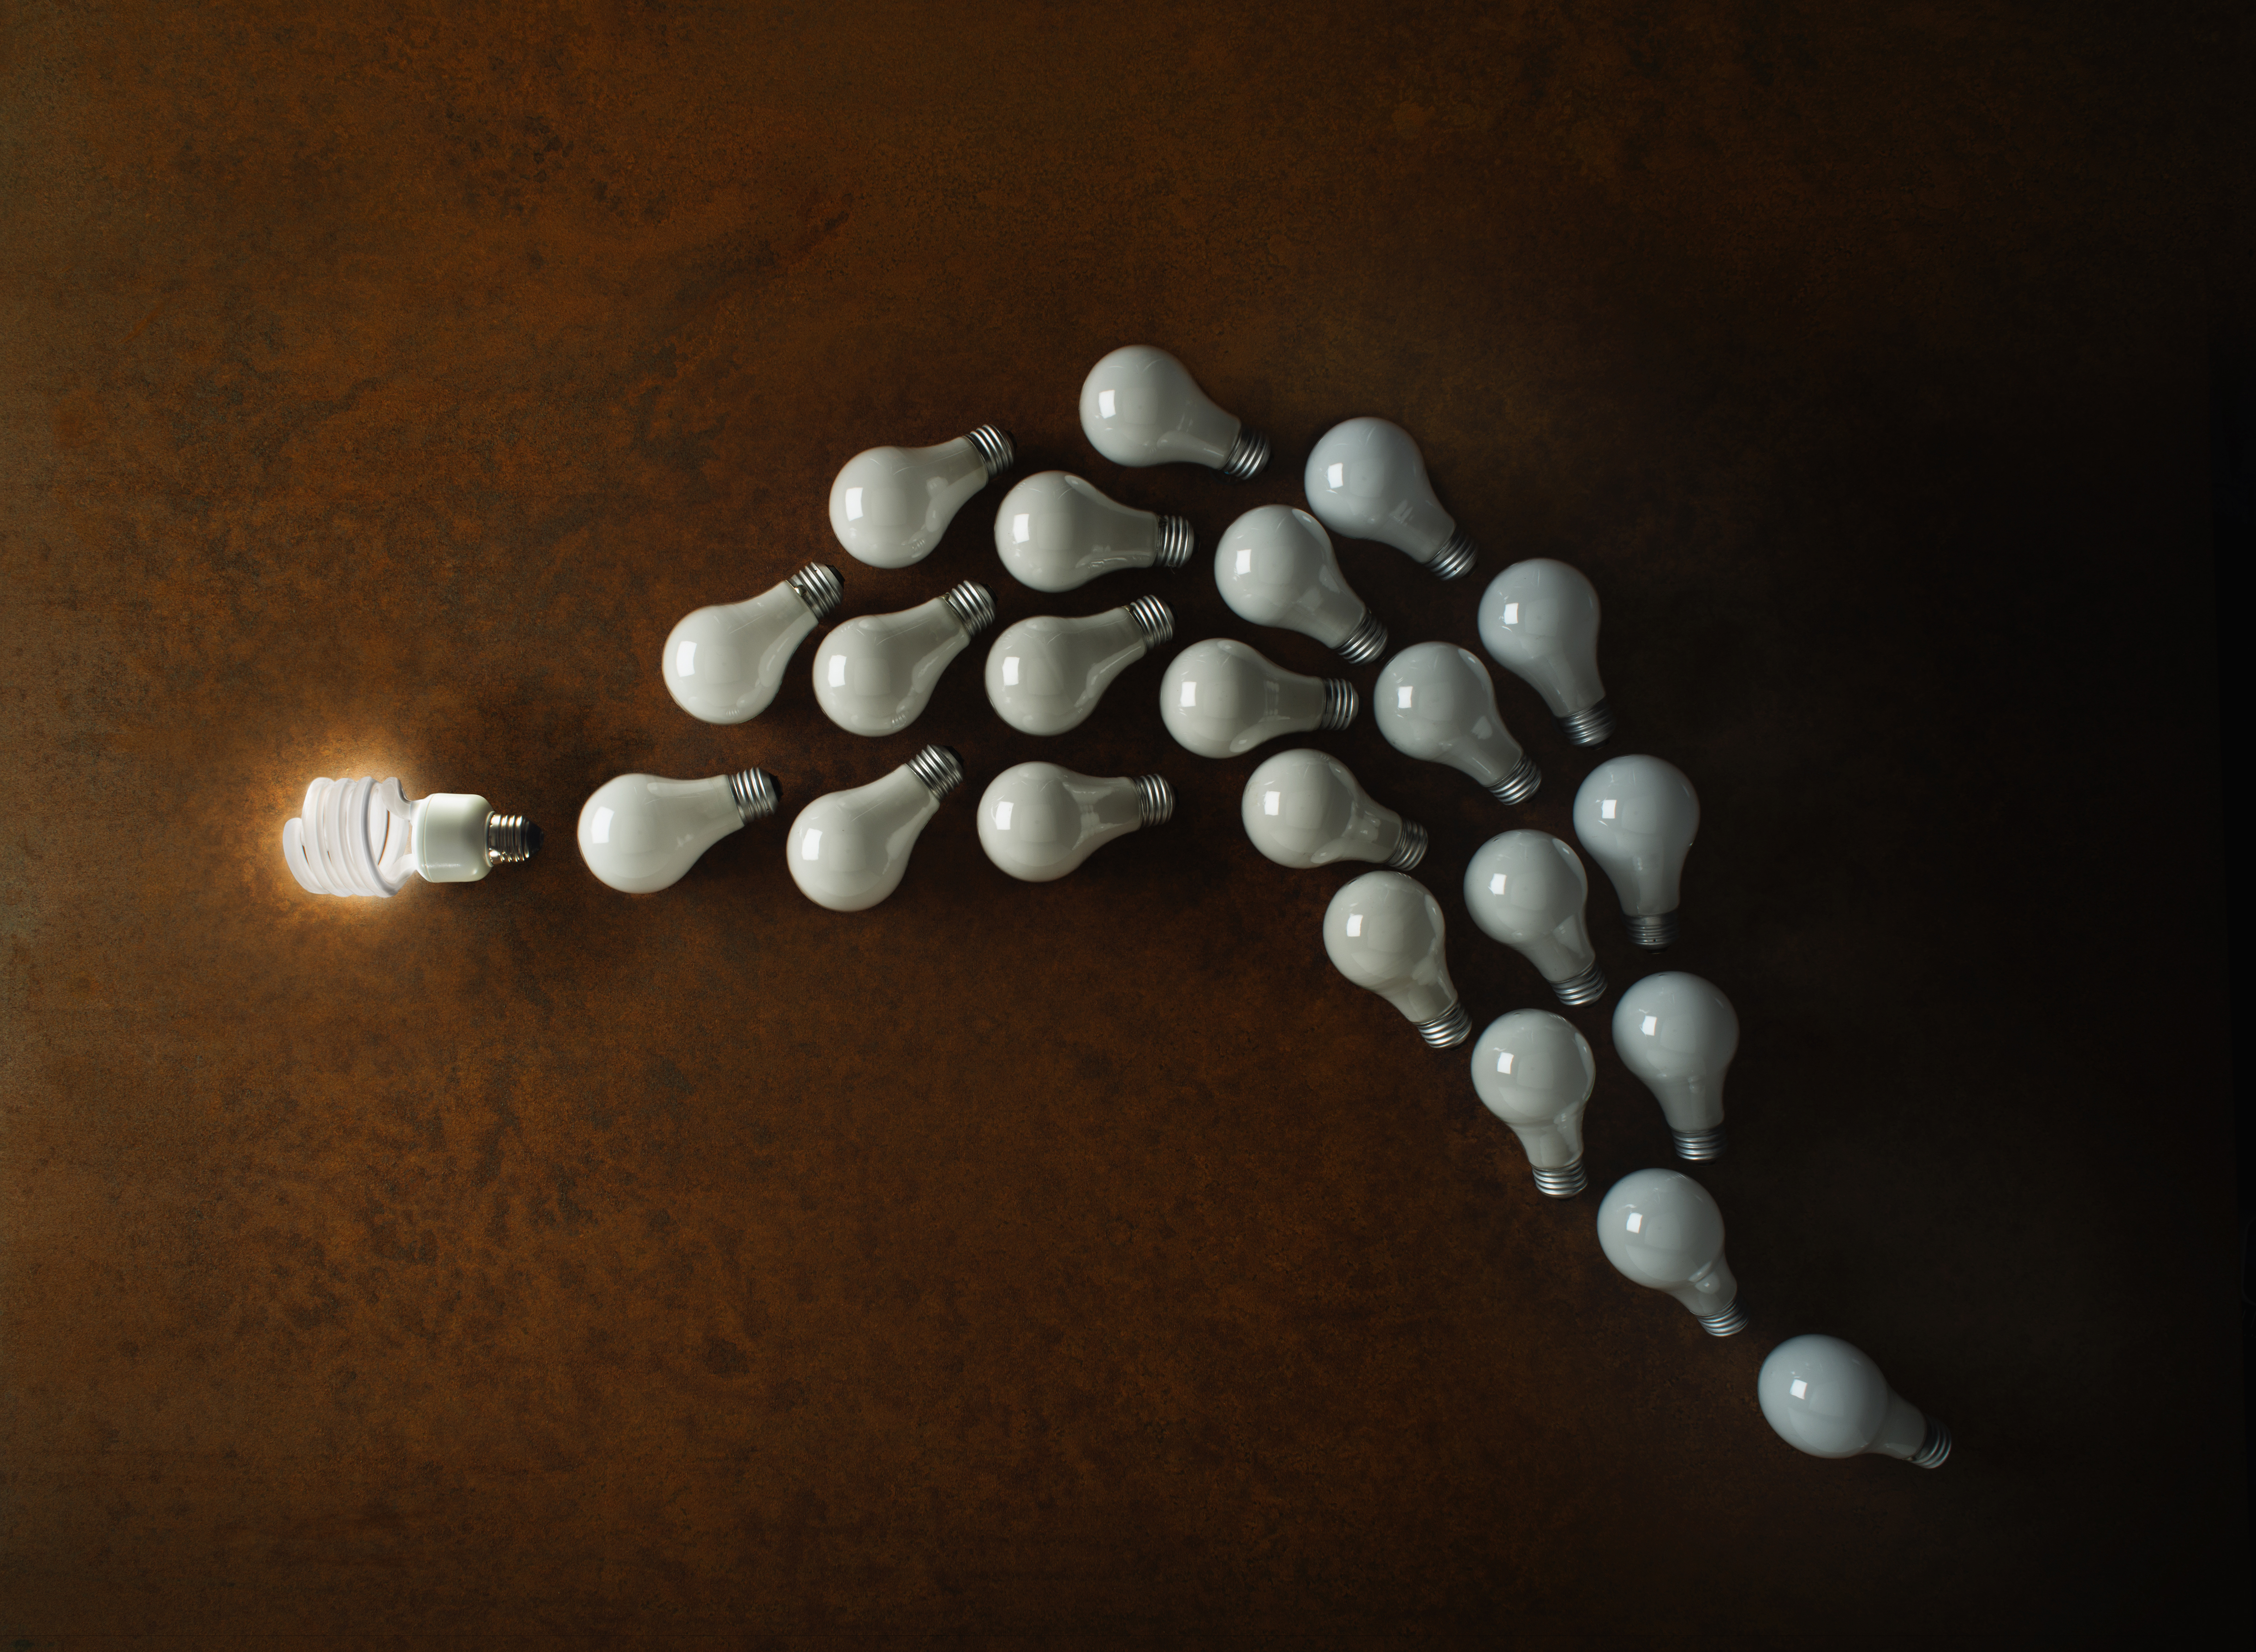 Compact Fluorescent Lightbulb leading the pack